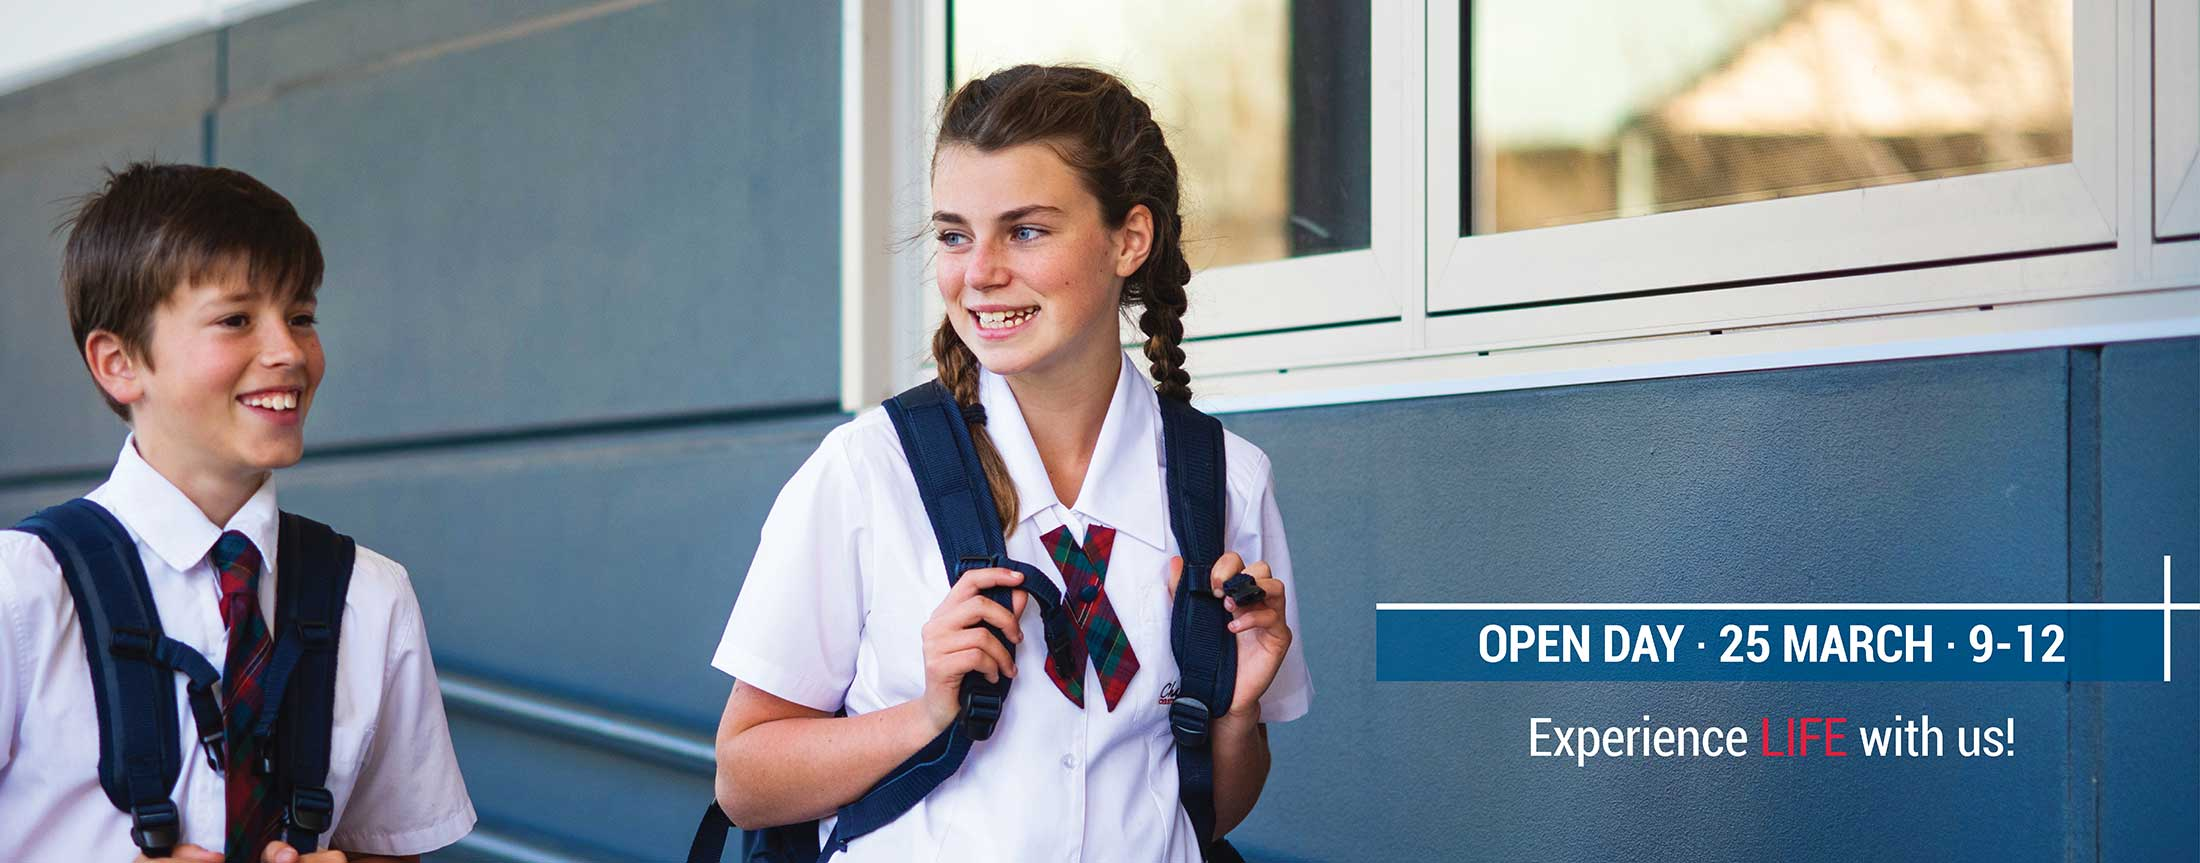 charlton christian college open day March 2020